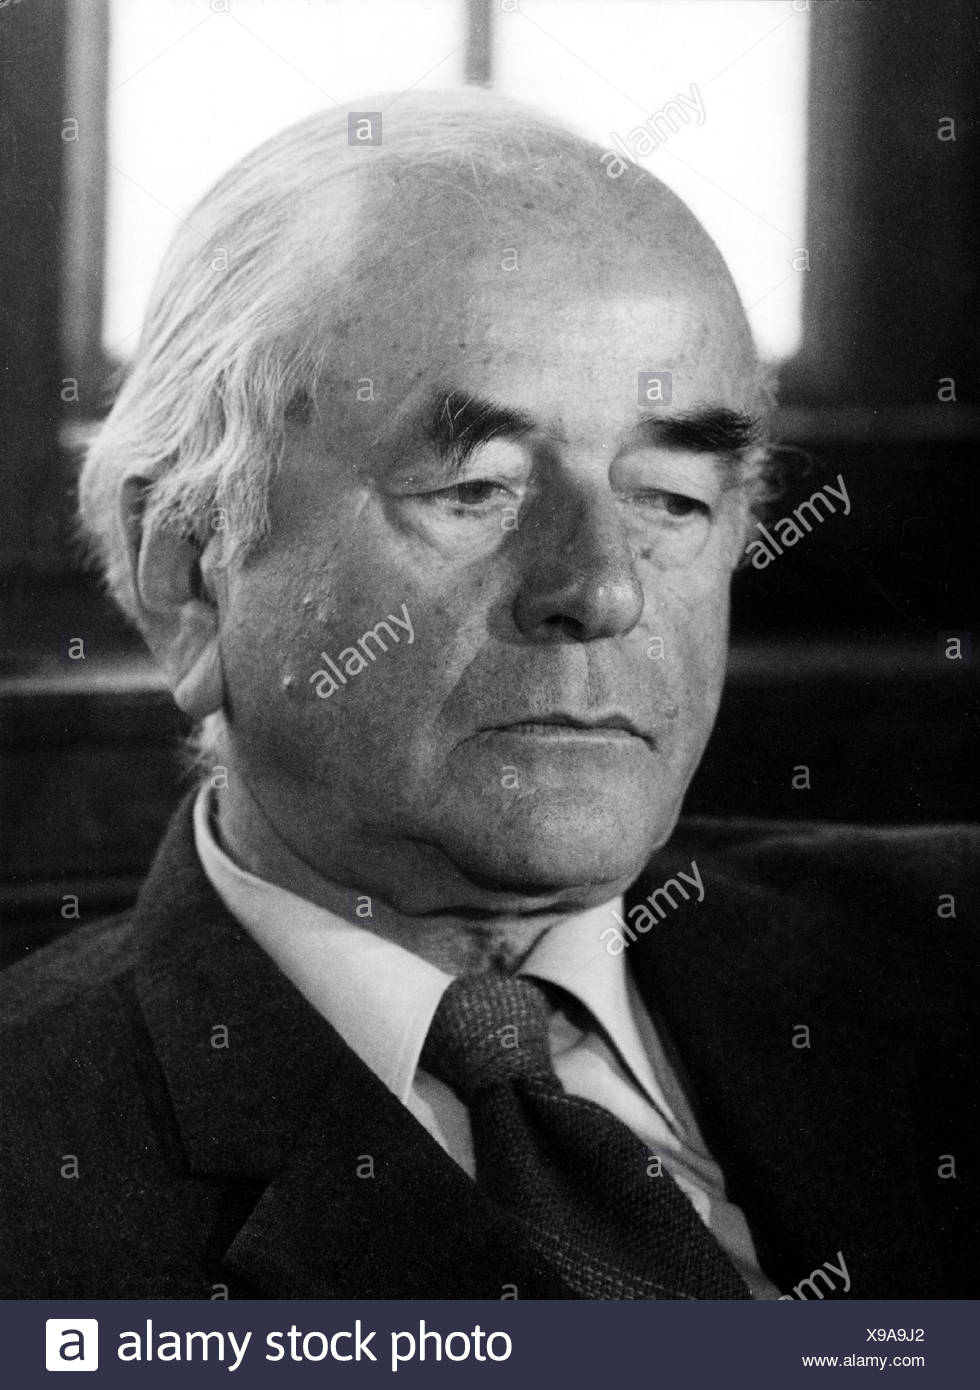 Speer, Albert, 19.3.1905 - 1.9.1981, German architect, politician (NSDAP), Minister of Armaments and War Production in Nazi Germany 1942 - 1945, portrait, 1970s, , Additional-Rights-Clearances-NA - Stock Image